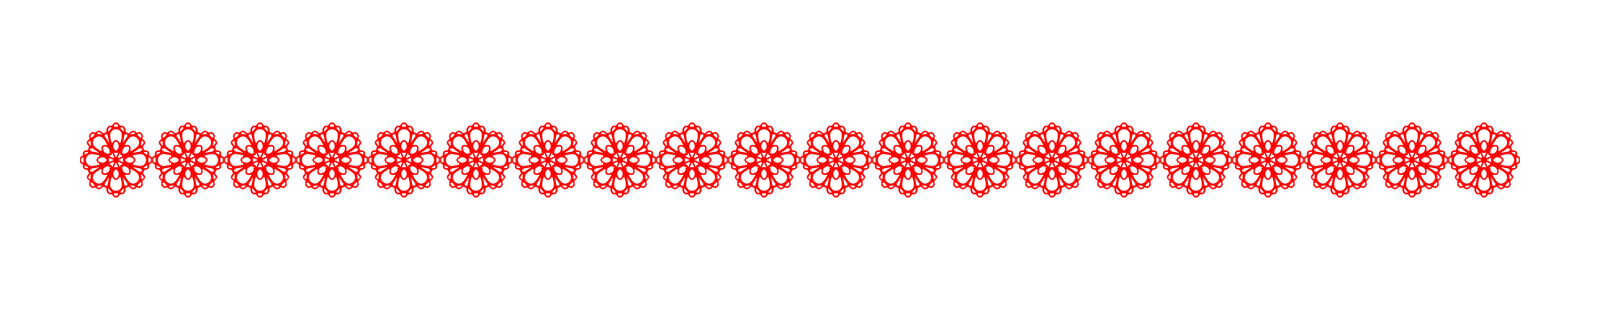 Transparent lace png. Syed imran lacepng